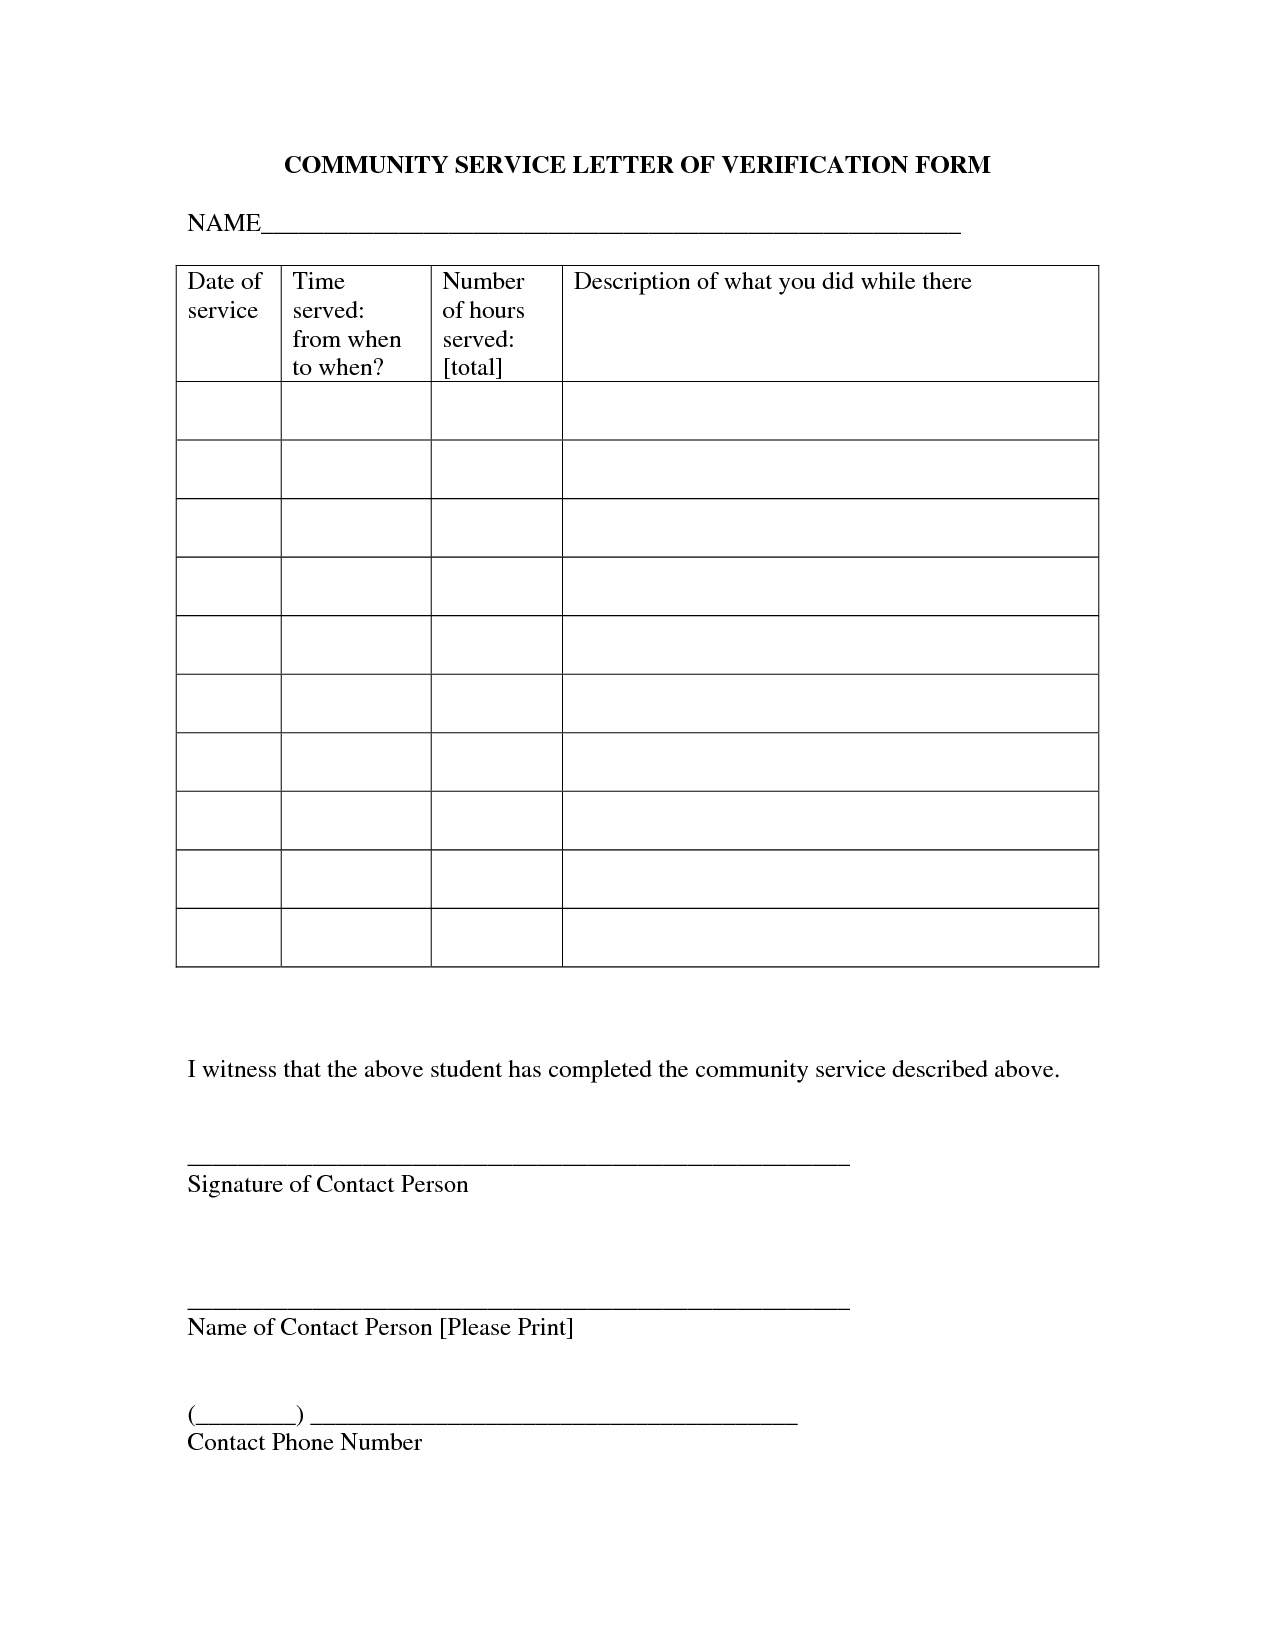 Community Service Form Template